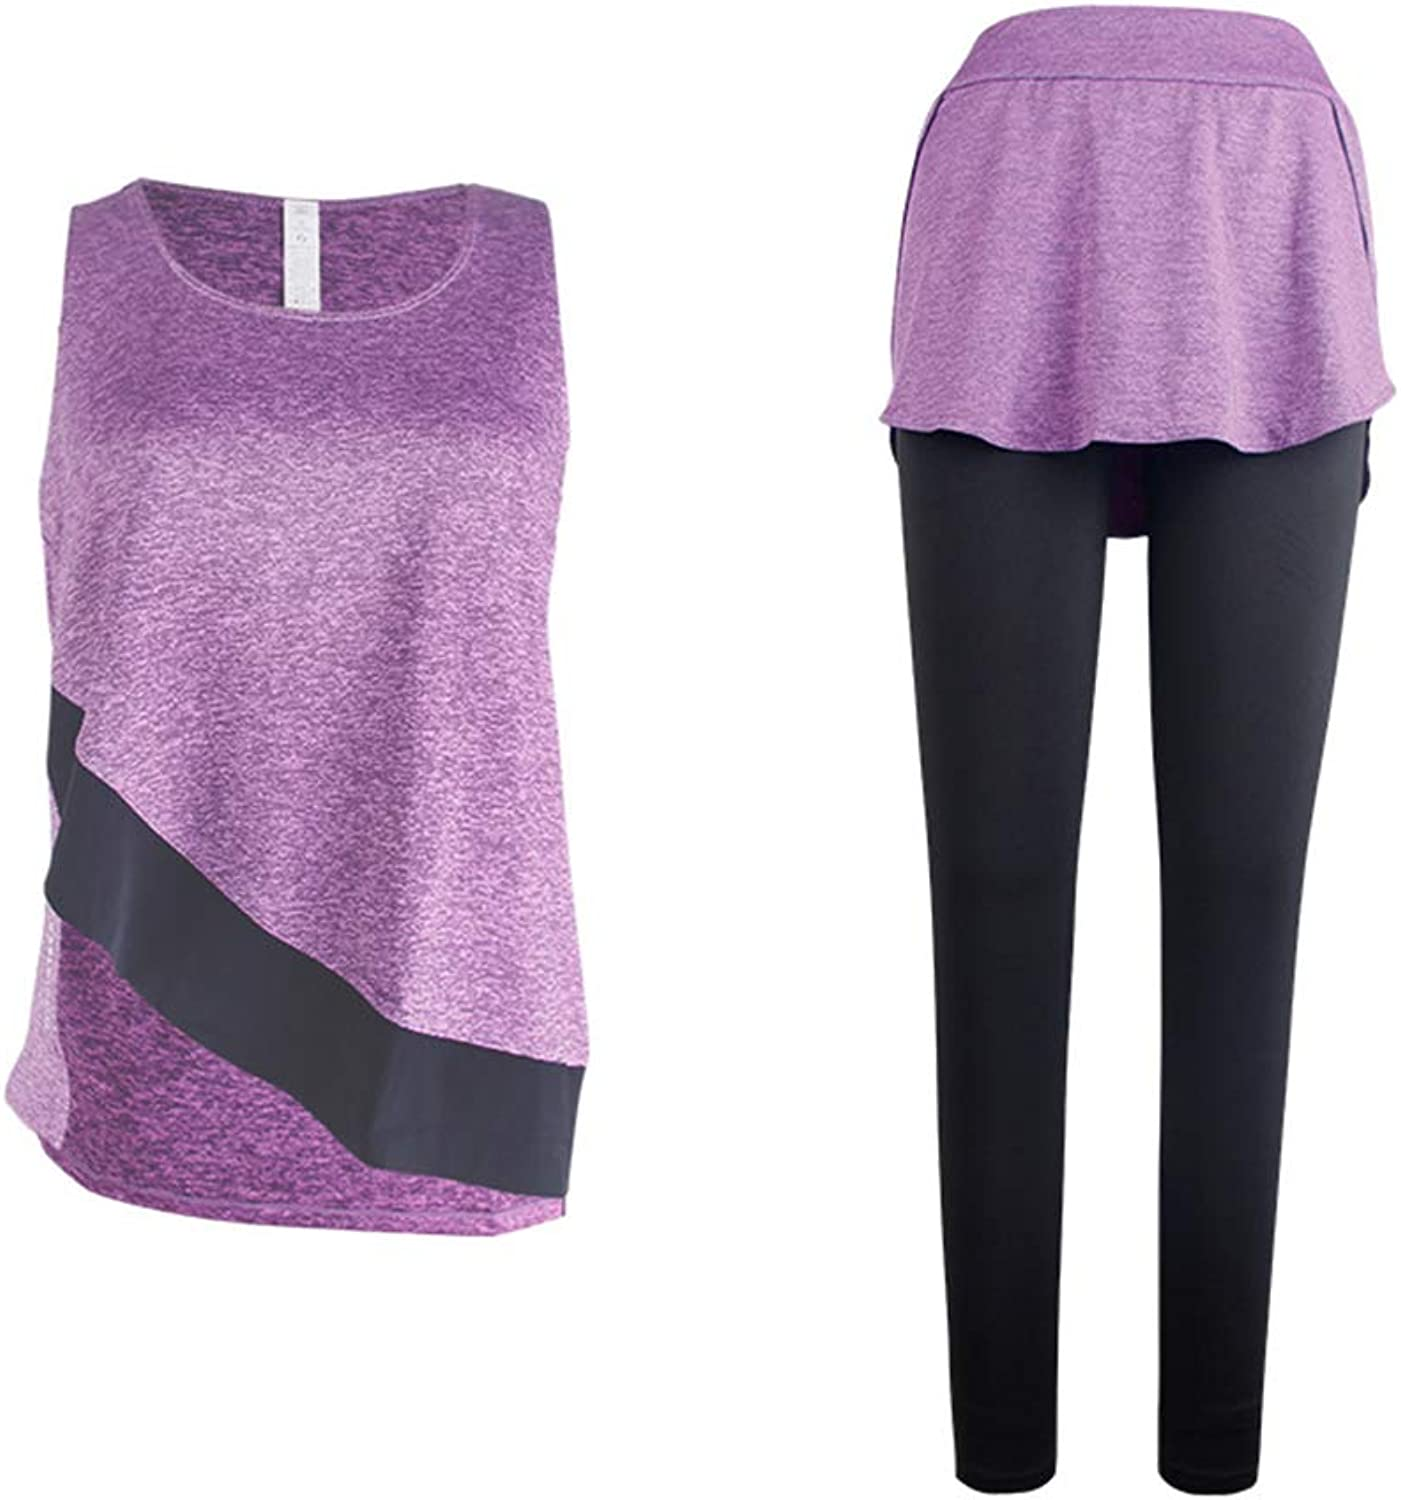 Yoga Clothing Set TwoPiece Set Ms Fitness Sportswear Fake Two Pieces Pants Dance Practice Clothes Fitness Suit